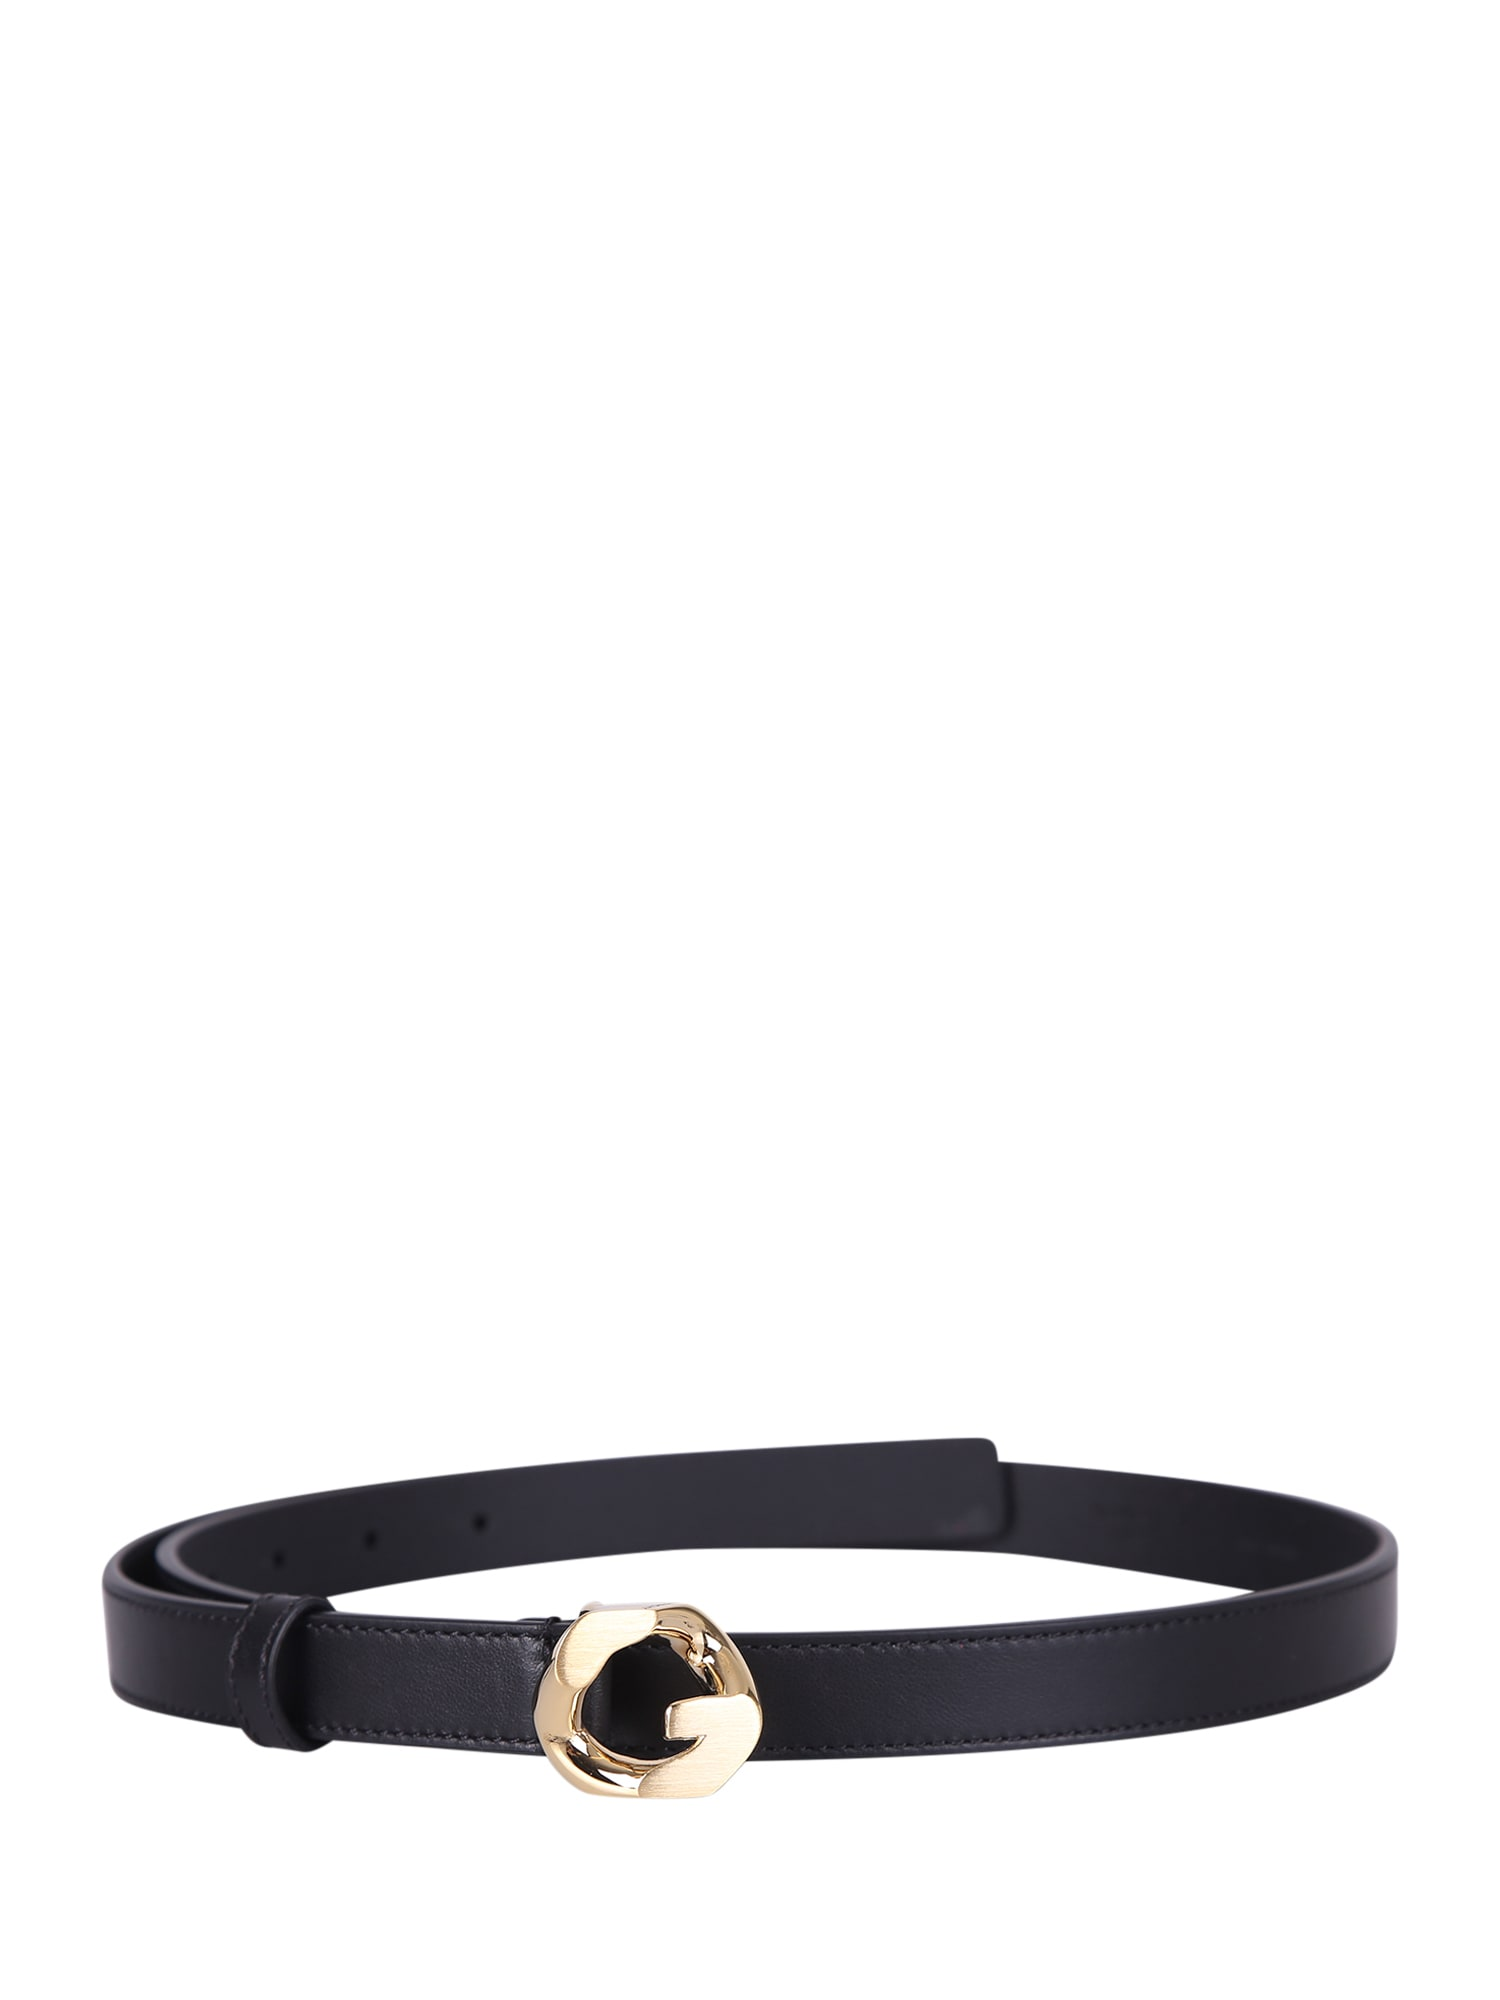 Givenchy Leather Belt